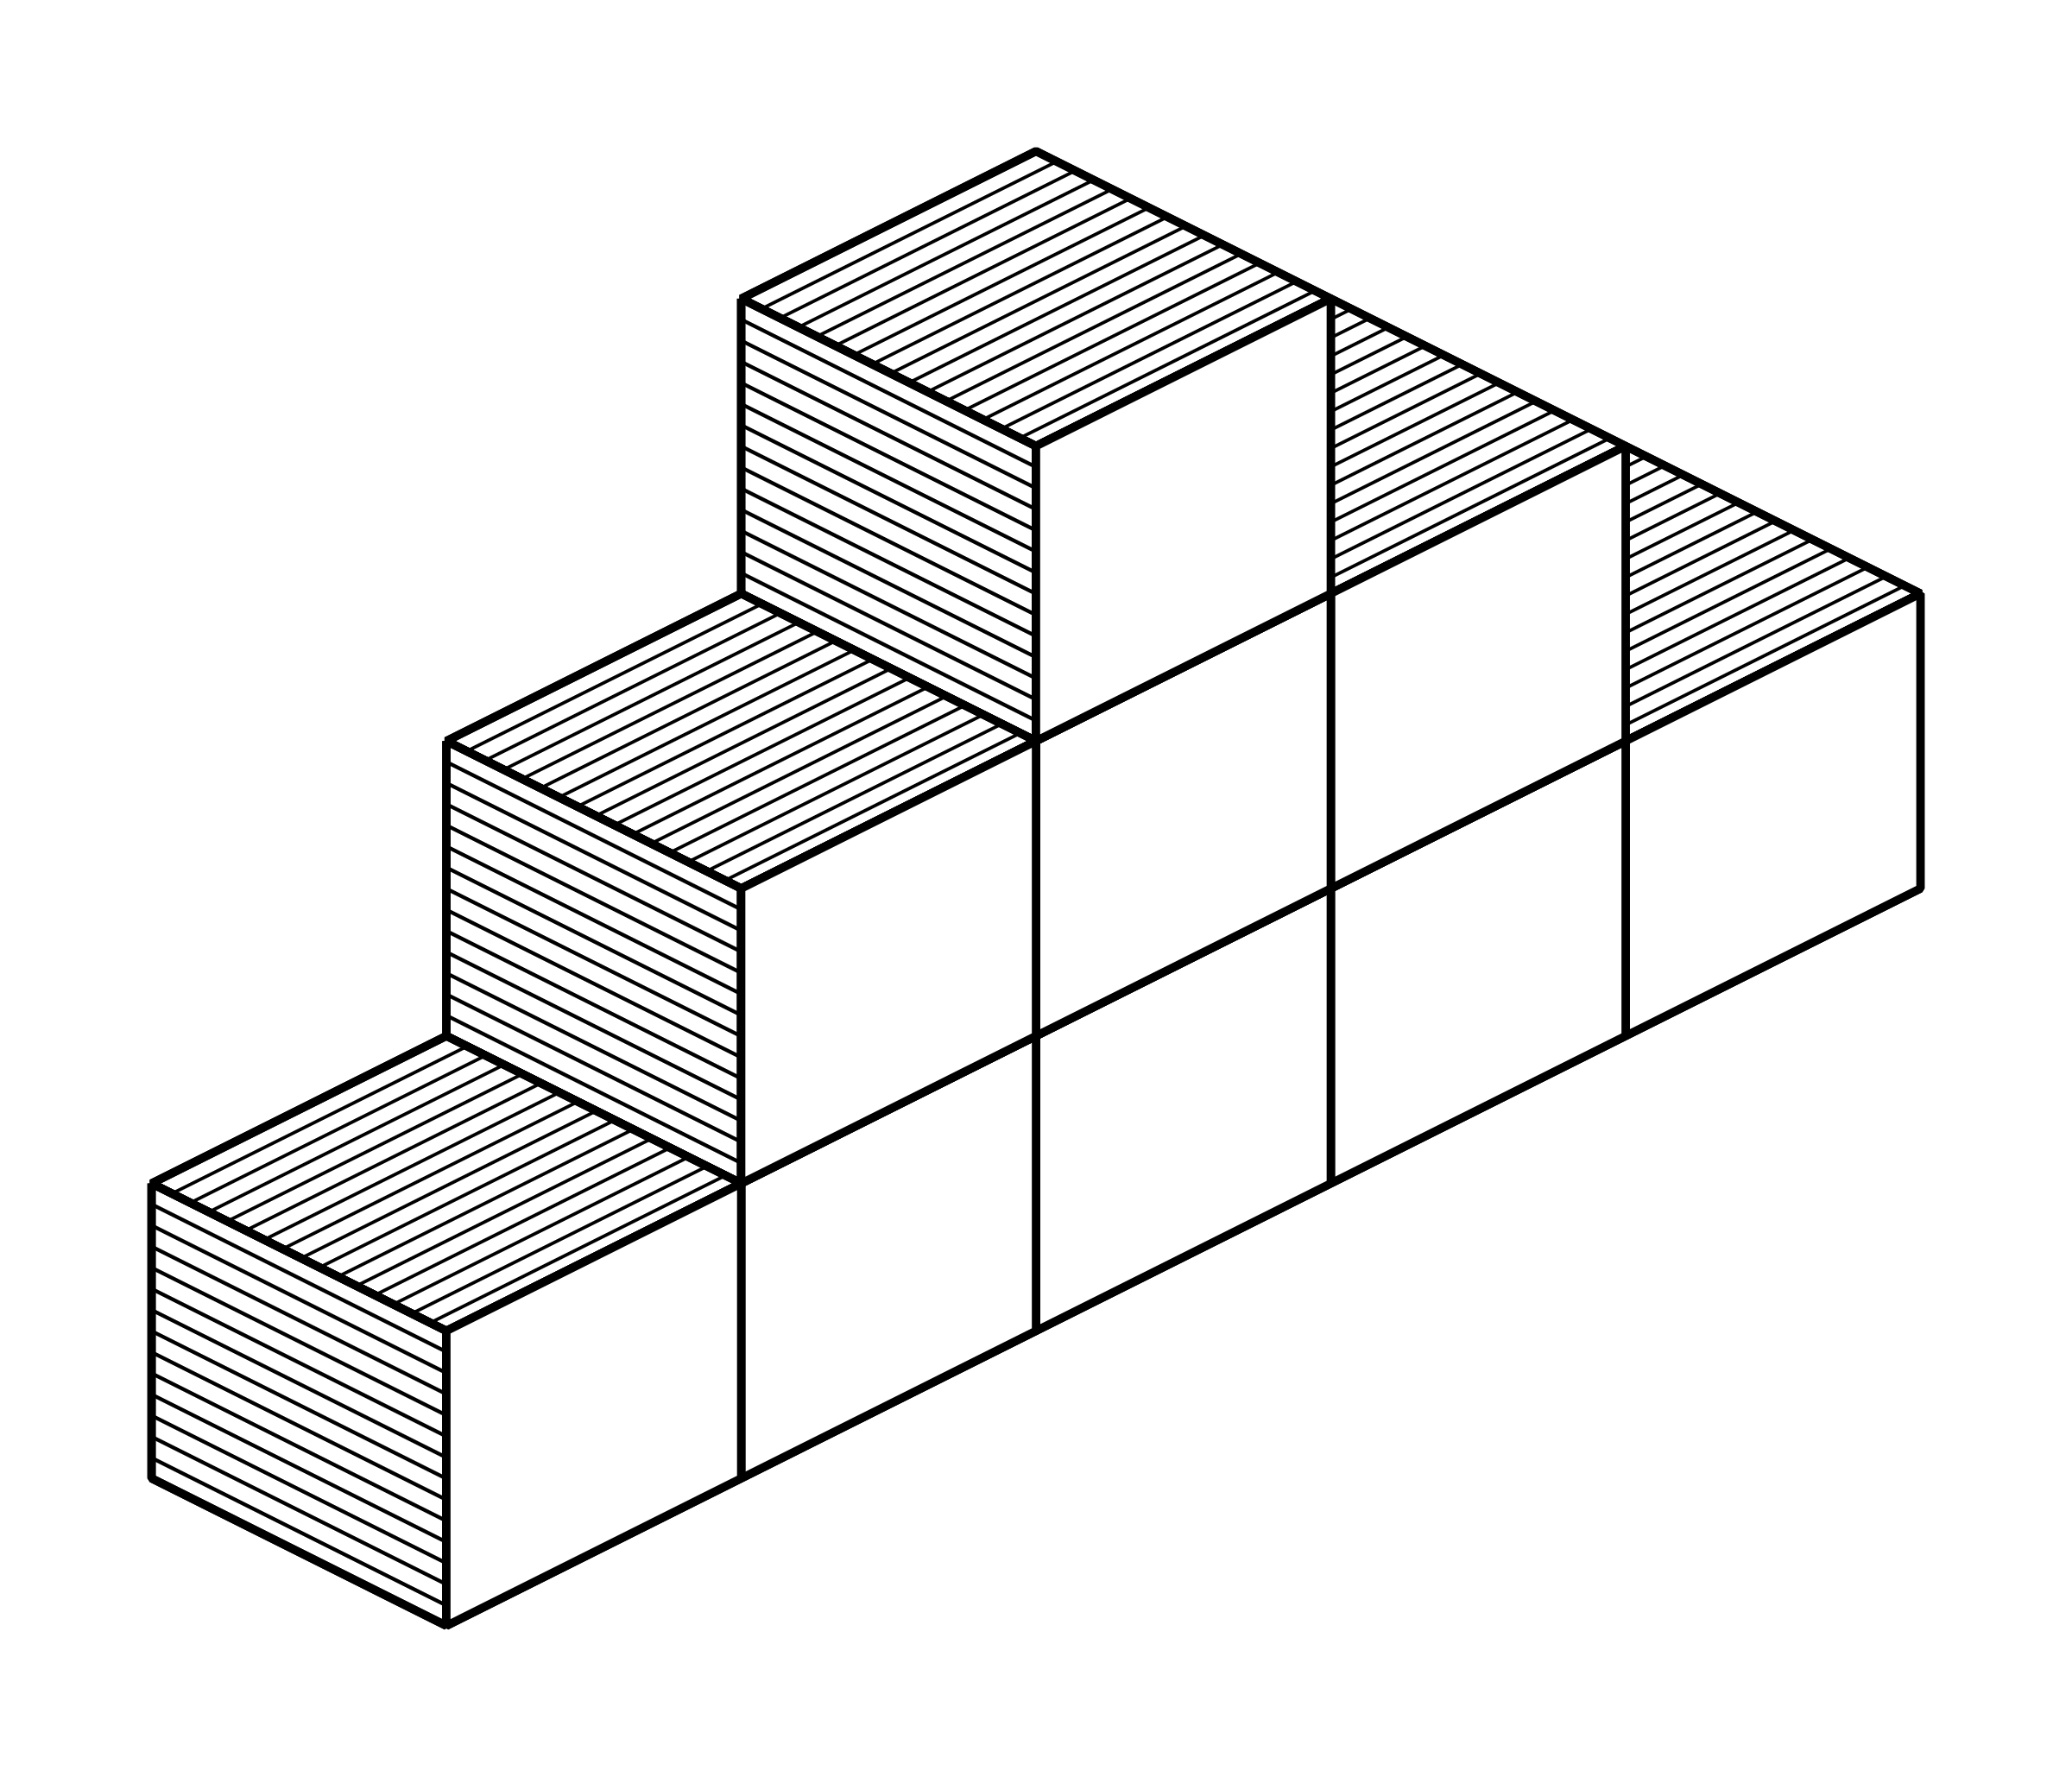 isometric drawing task 04 by frankes